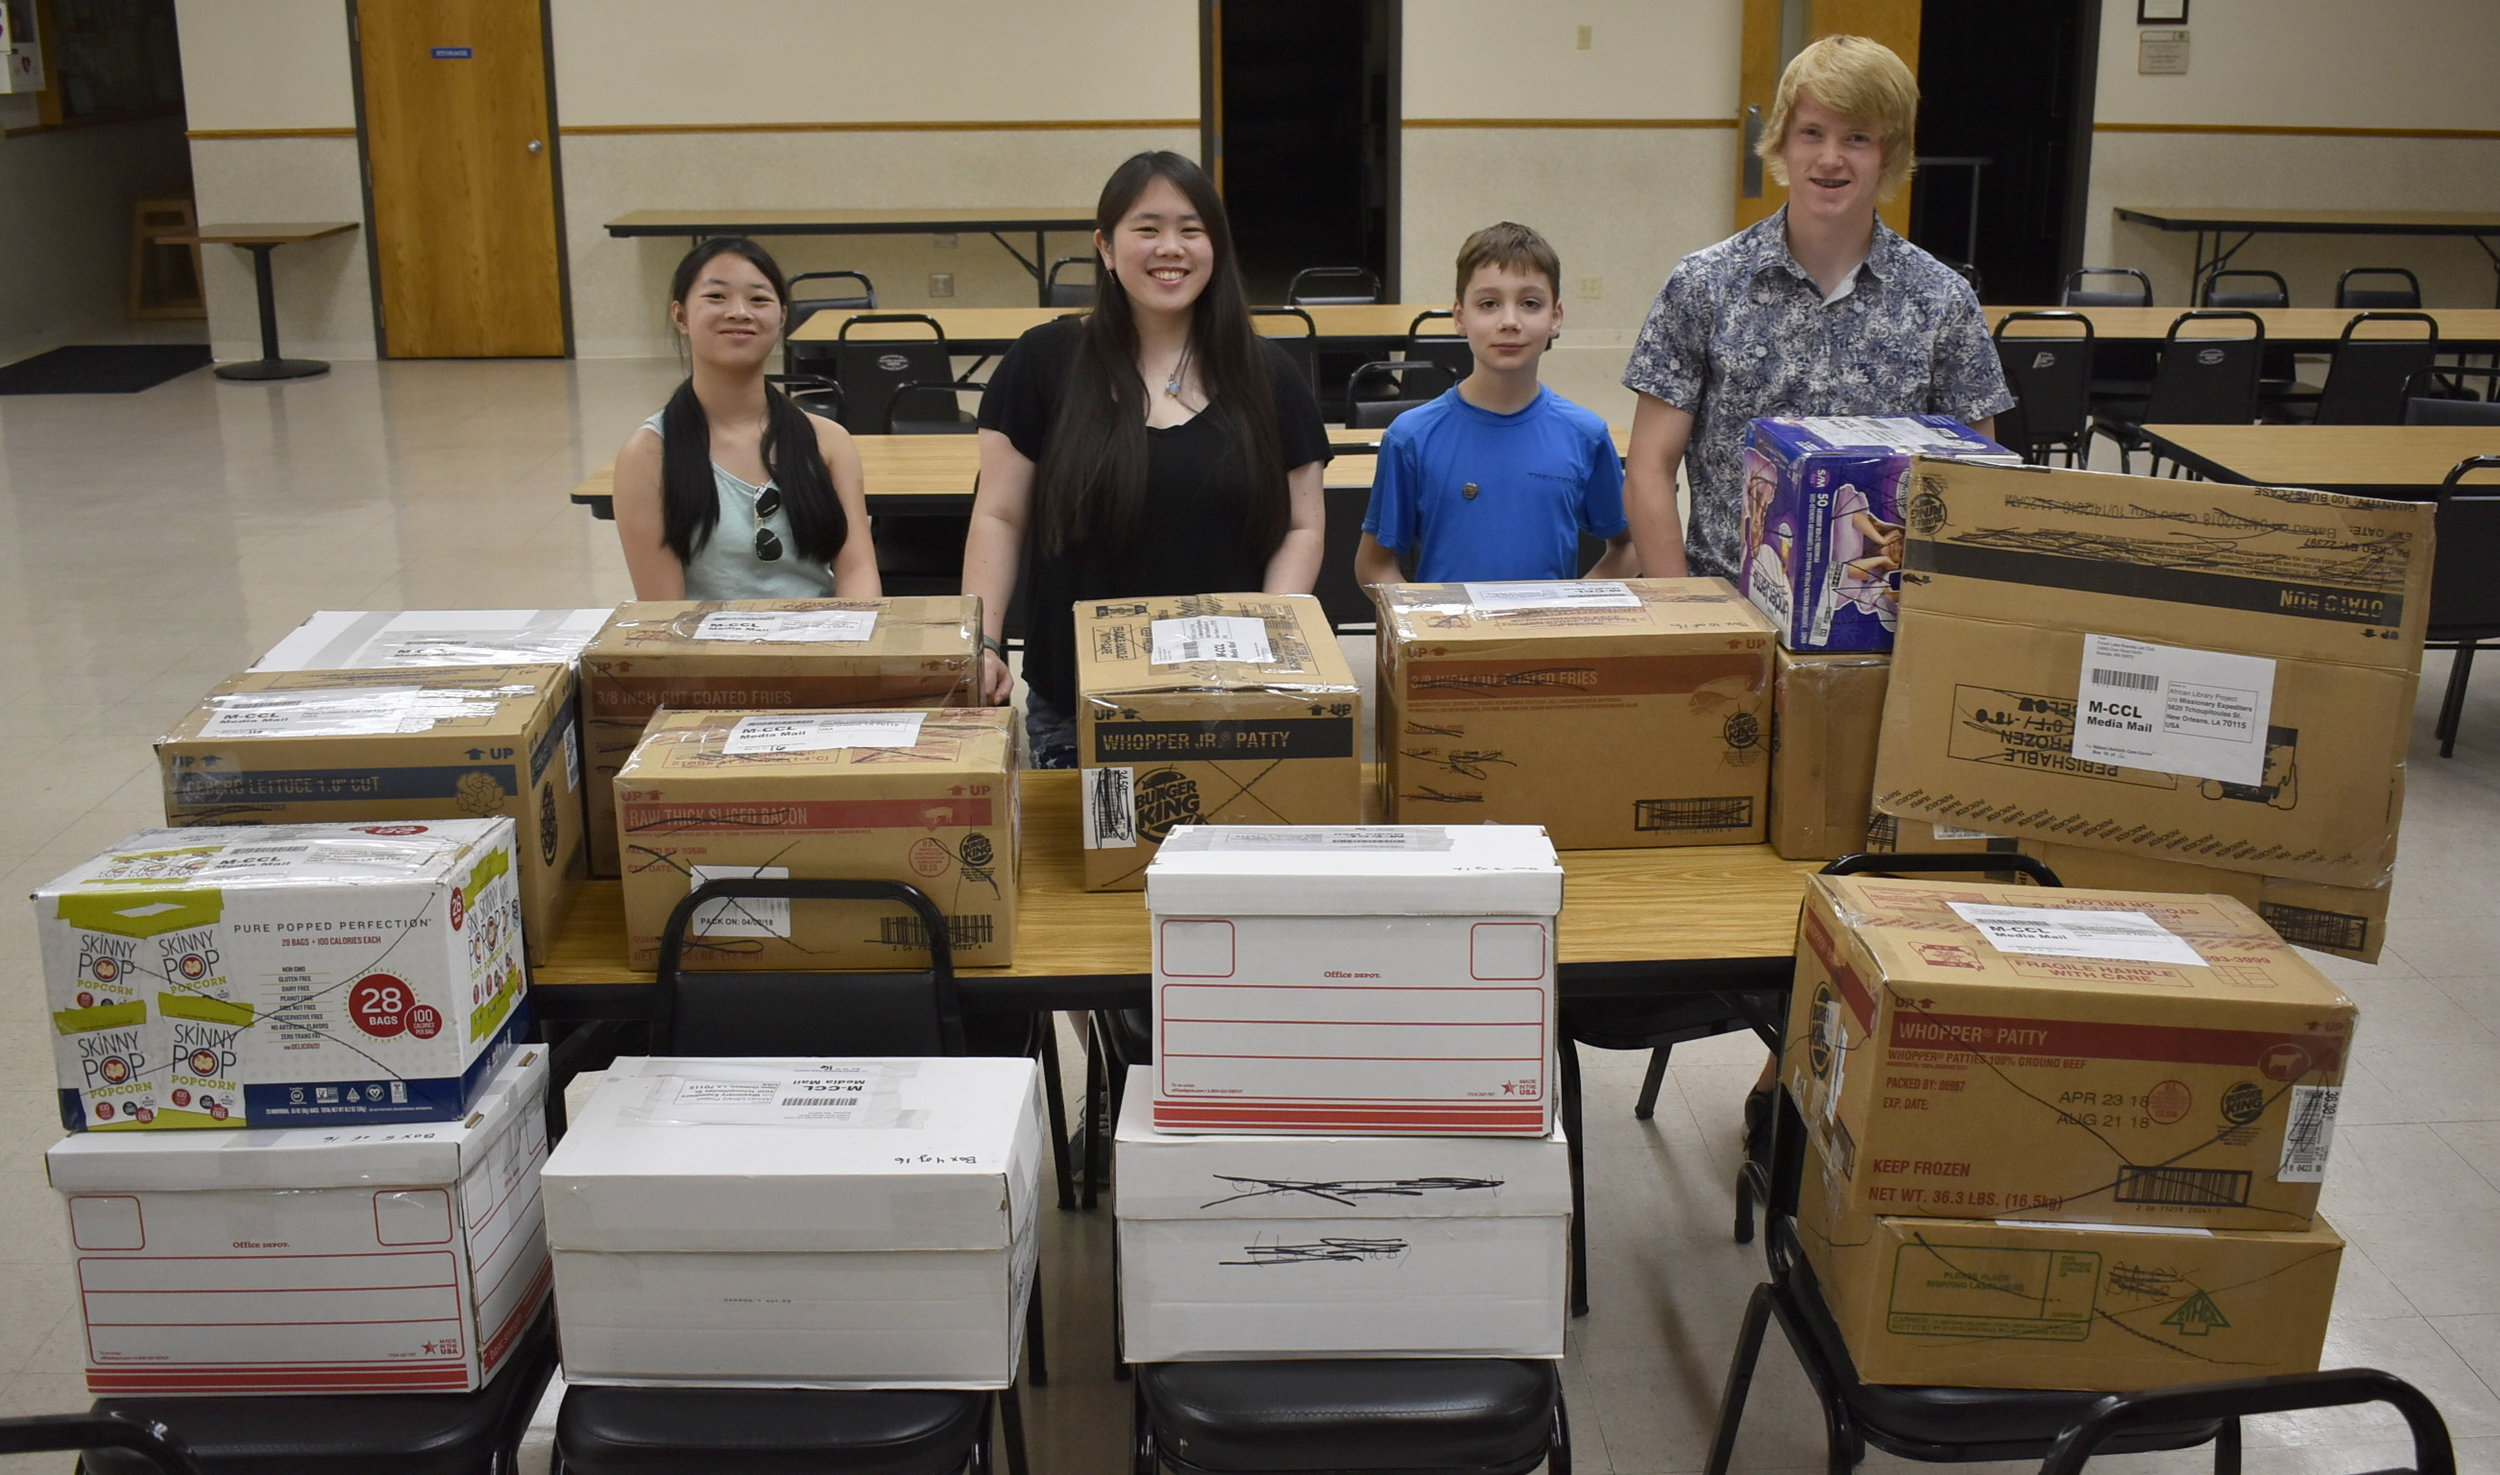 Give Life...Give Hope partnered with the Forest Lake-Scandia Leo Club to package the 1,012 books and learning materials for the library in Malawi, Africa.